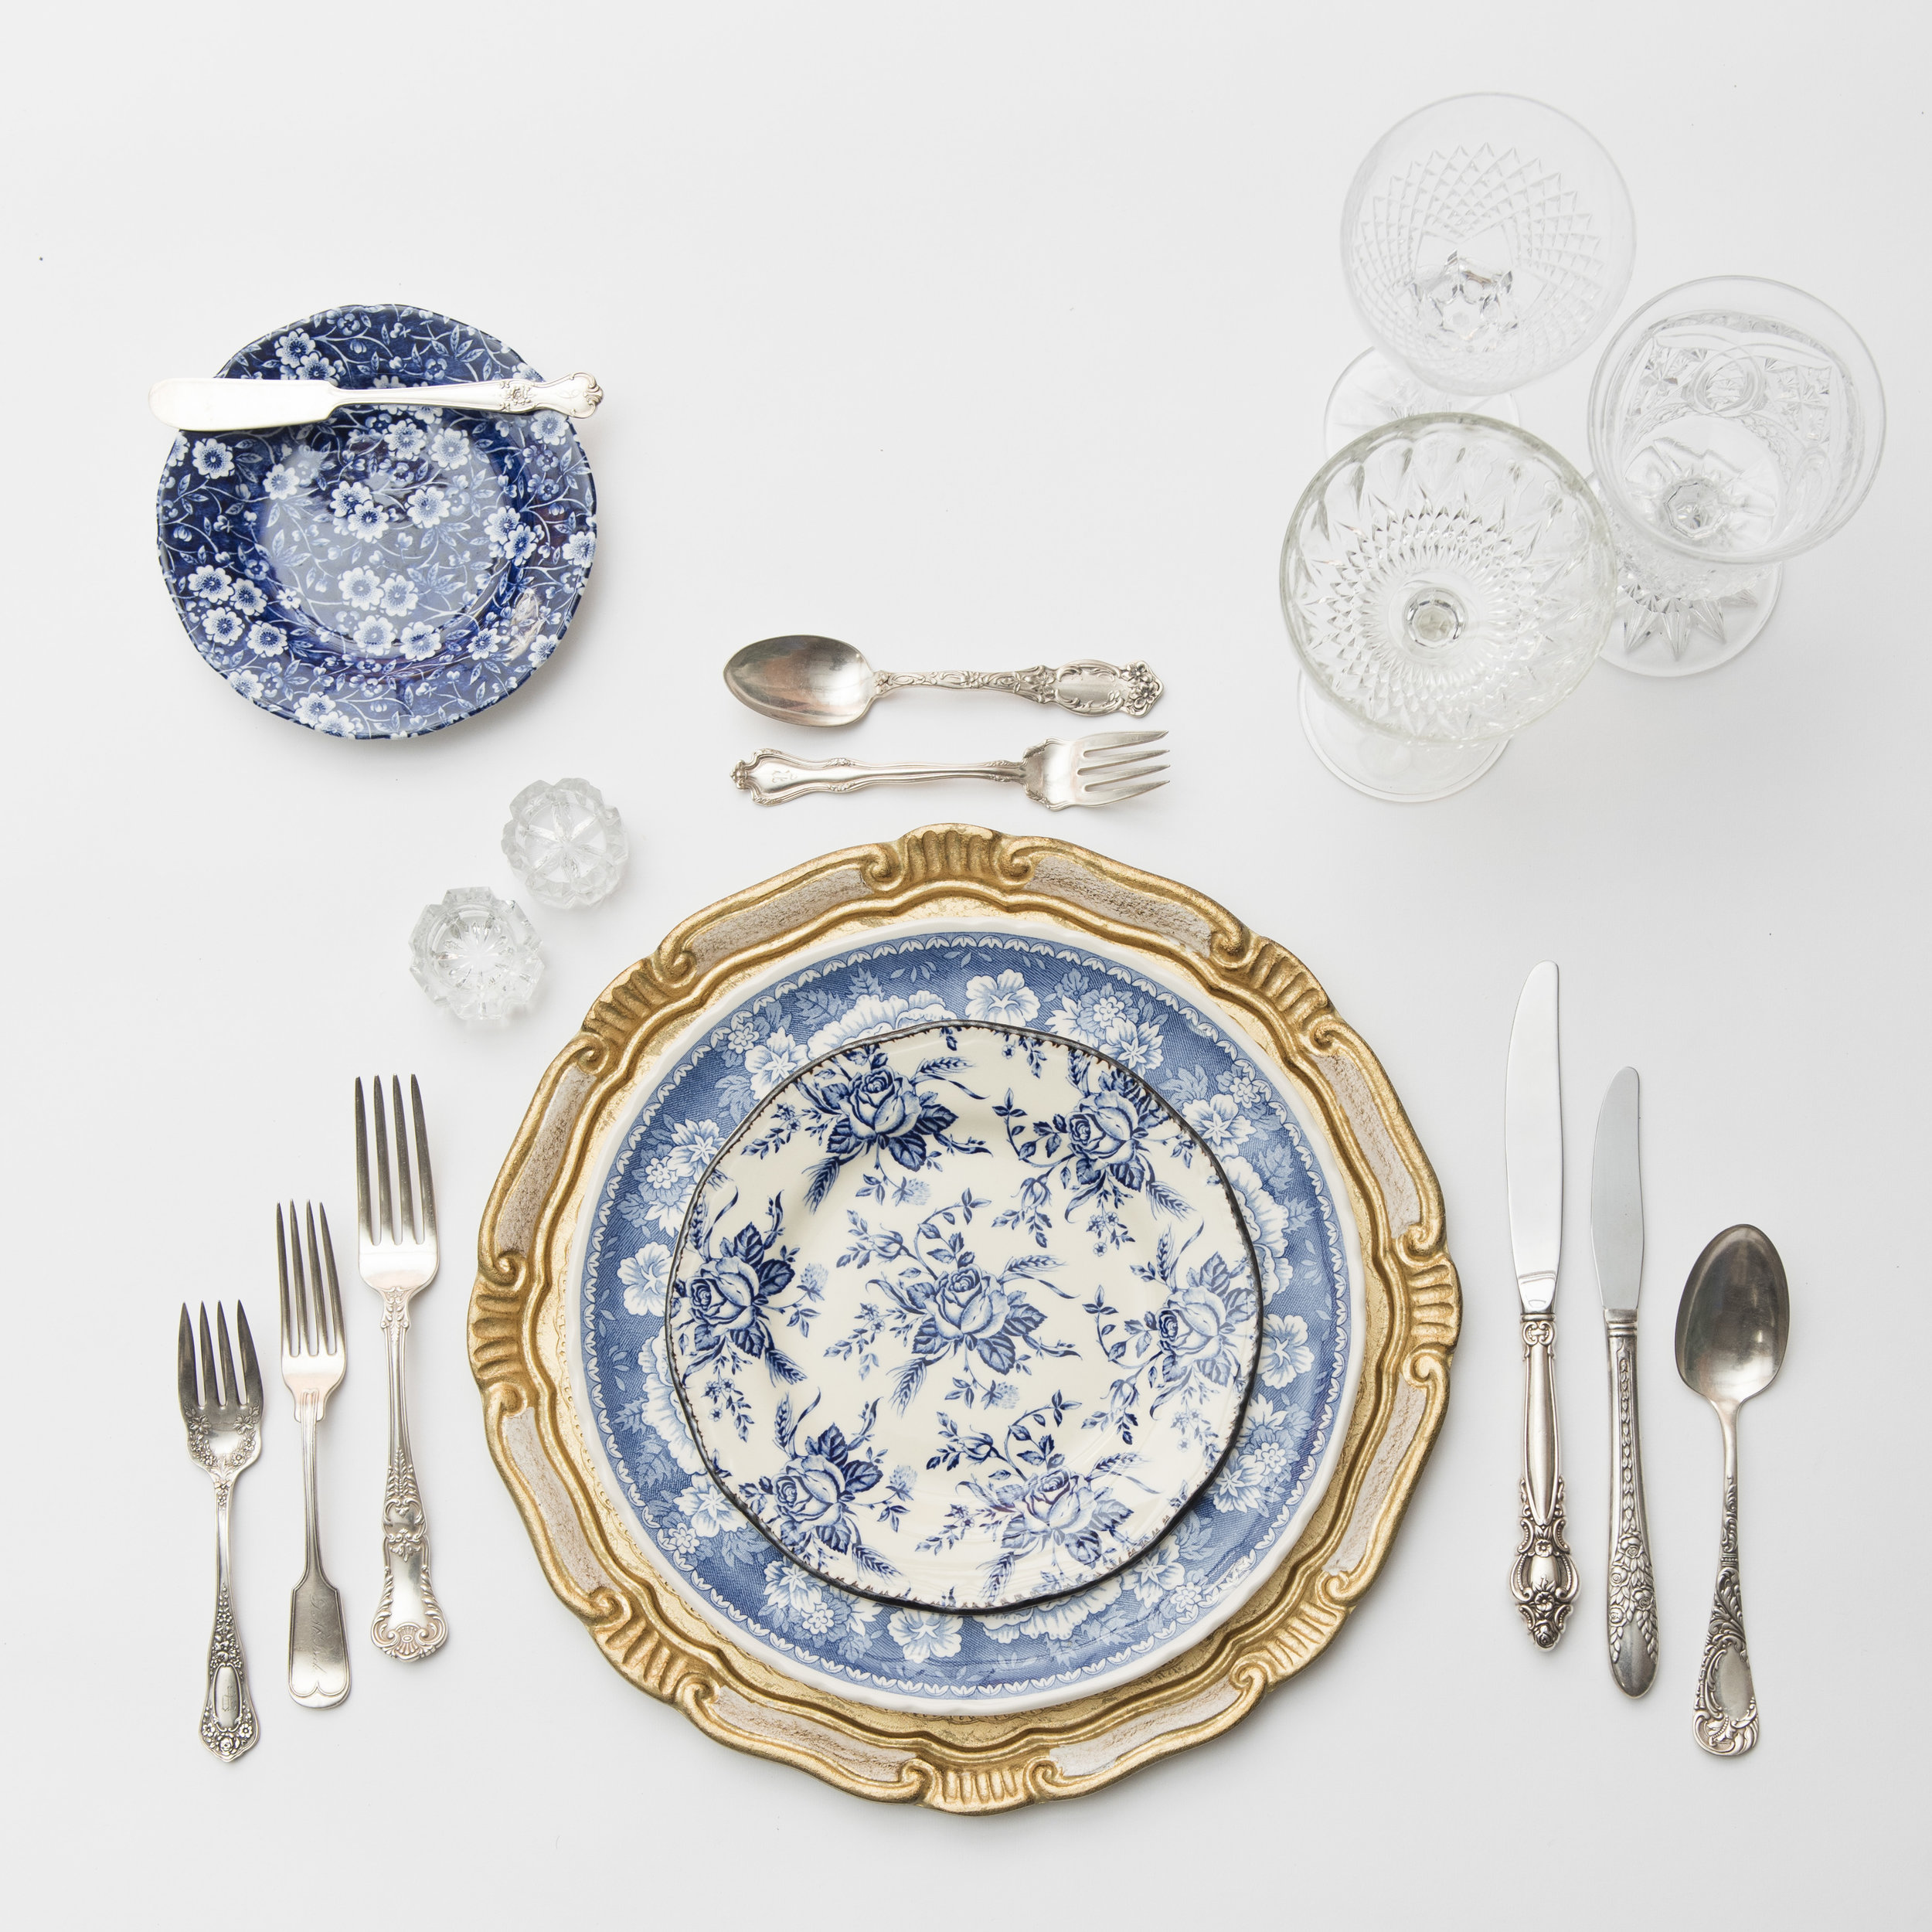 RENT: Florentine Chargers in White/Gold + Blue Garden Collection Vintage China + Antique Silver Flatware + Vintage Cut Crystal Goblets + Early American Pressed Glass Goblets + Vintage Champagne Coupes + Antique Crystal Salt Cellars  SHOP:Florentine Chargers in White/Gold